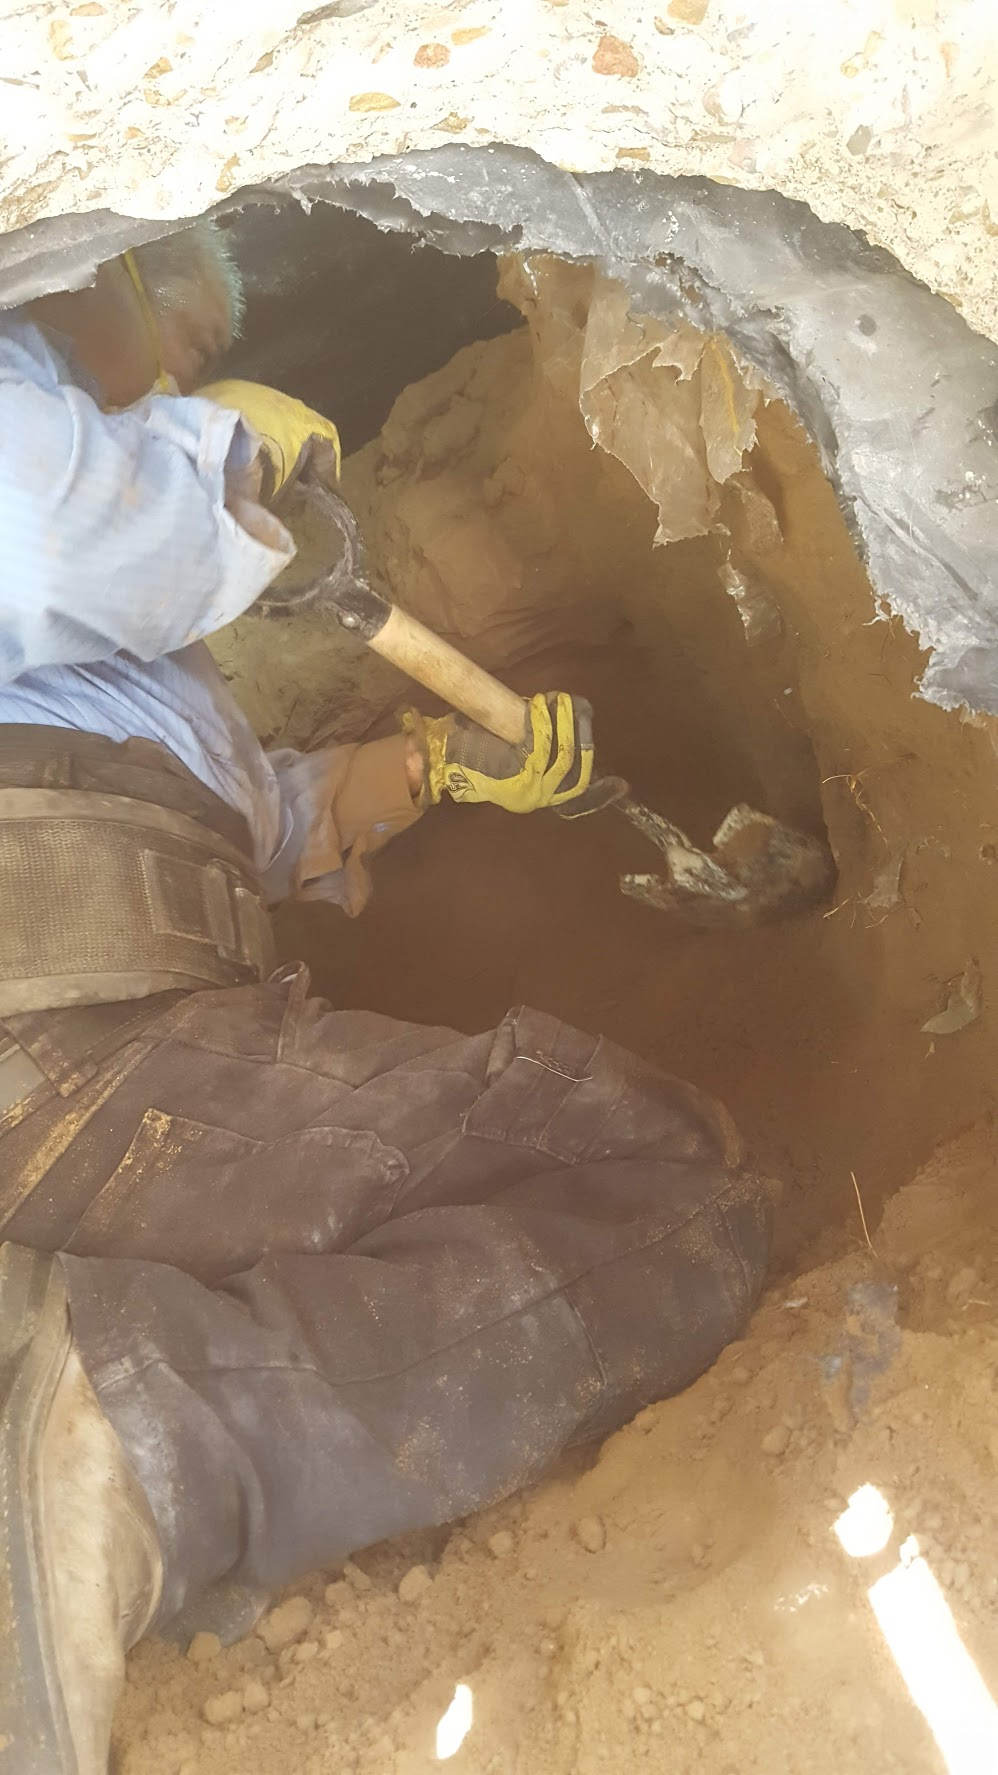 Digging to find leak